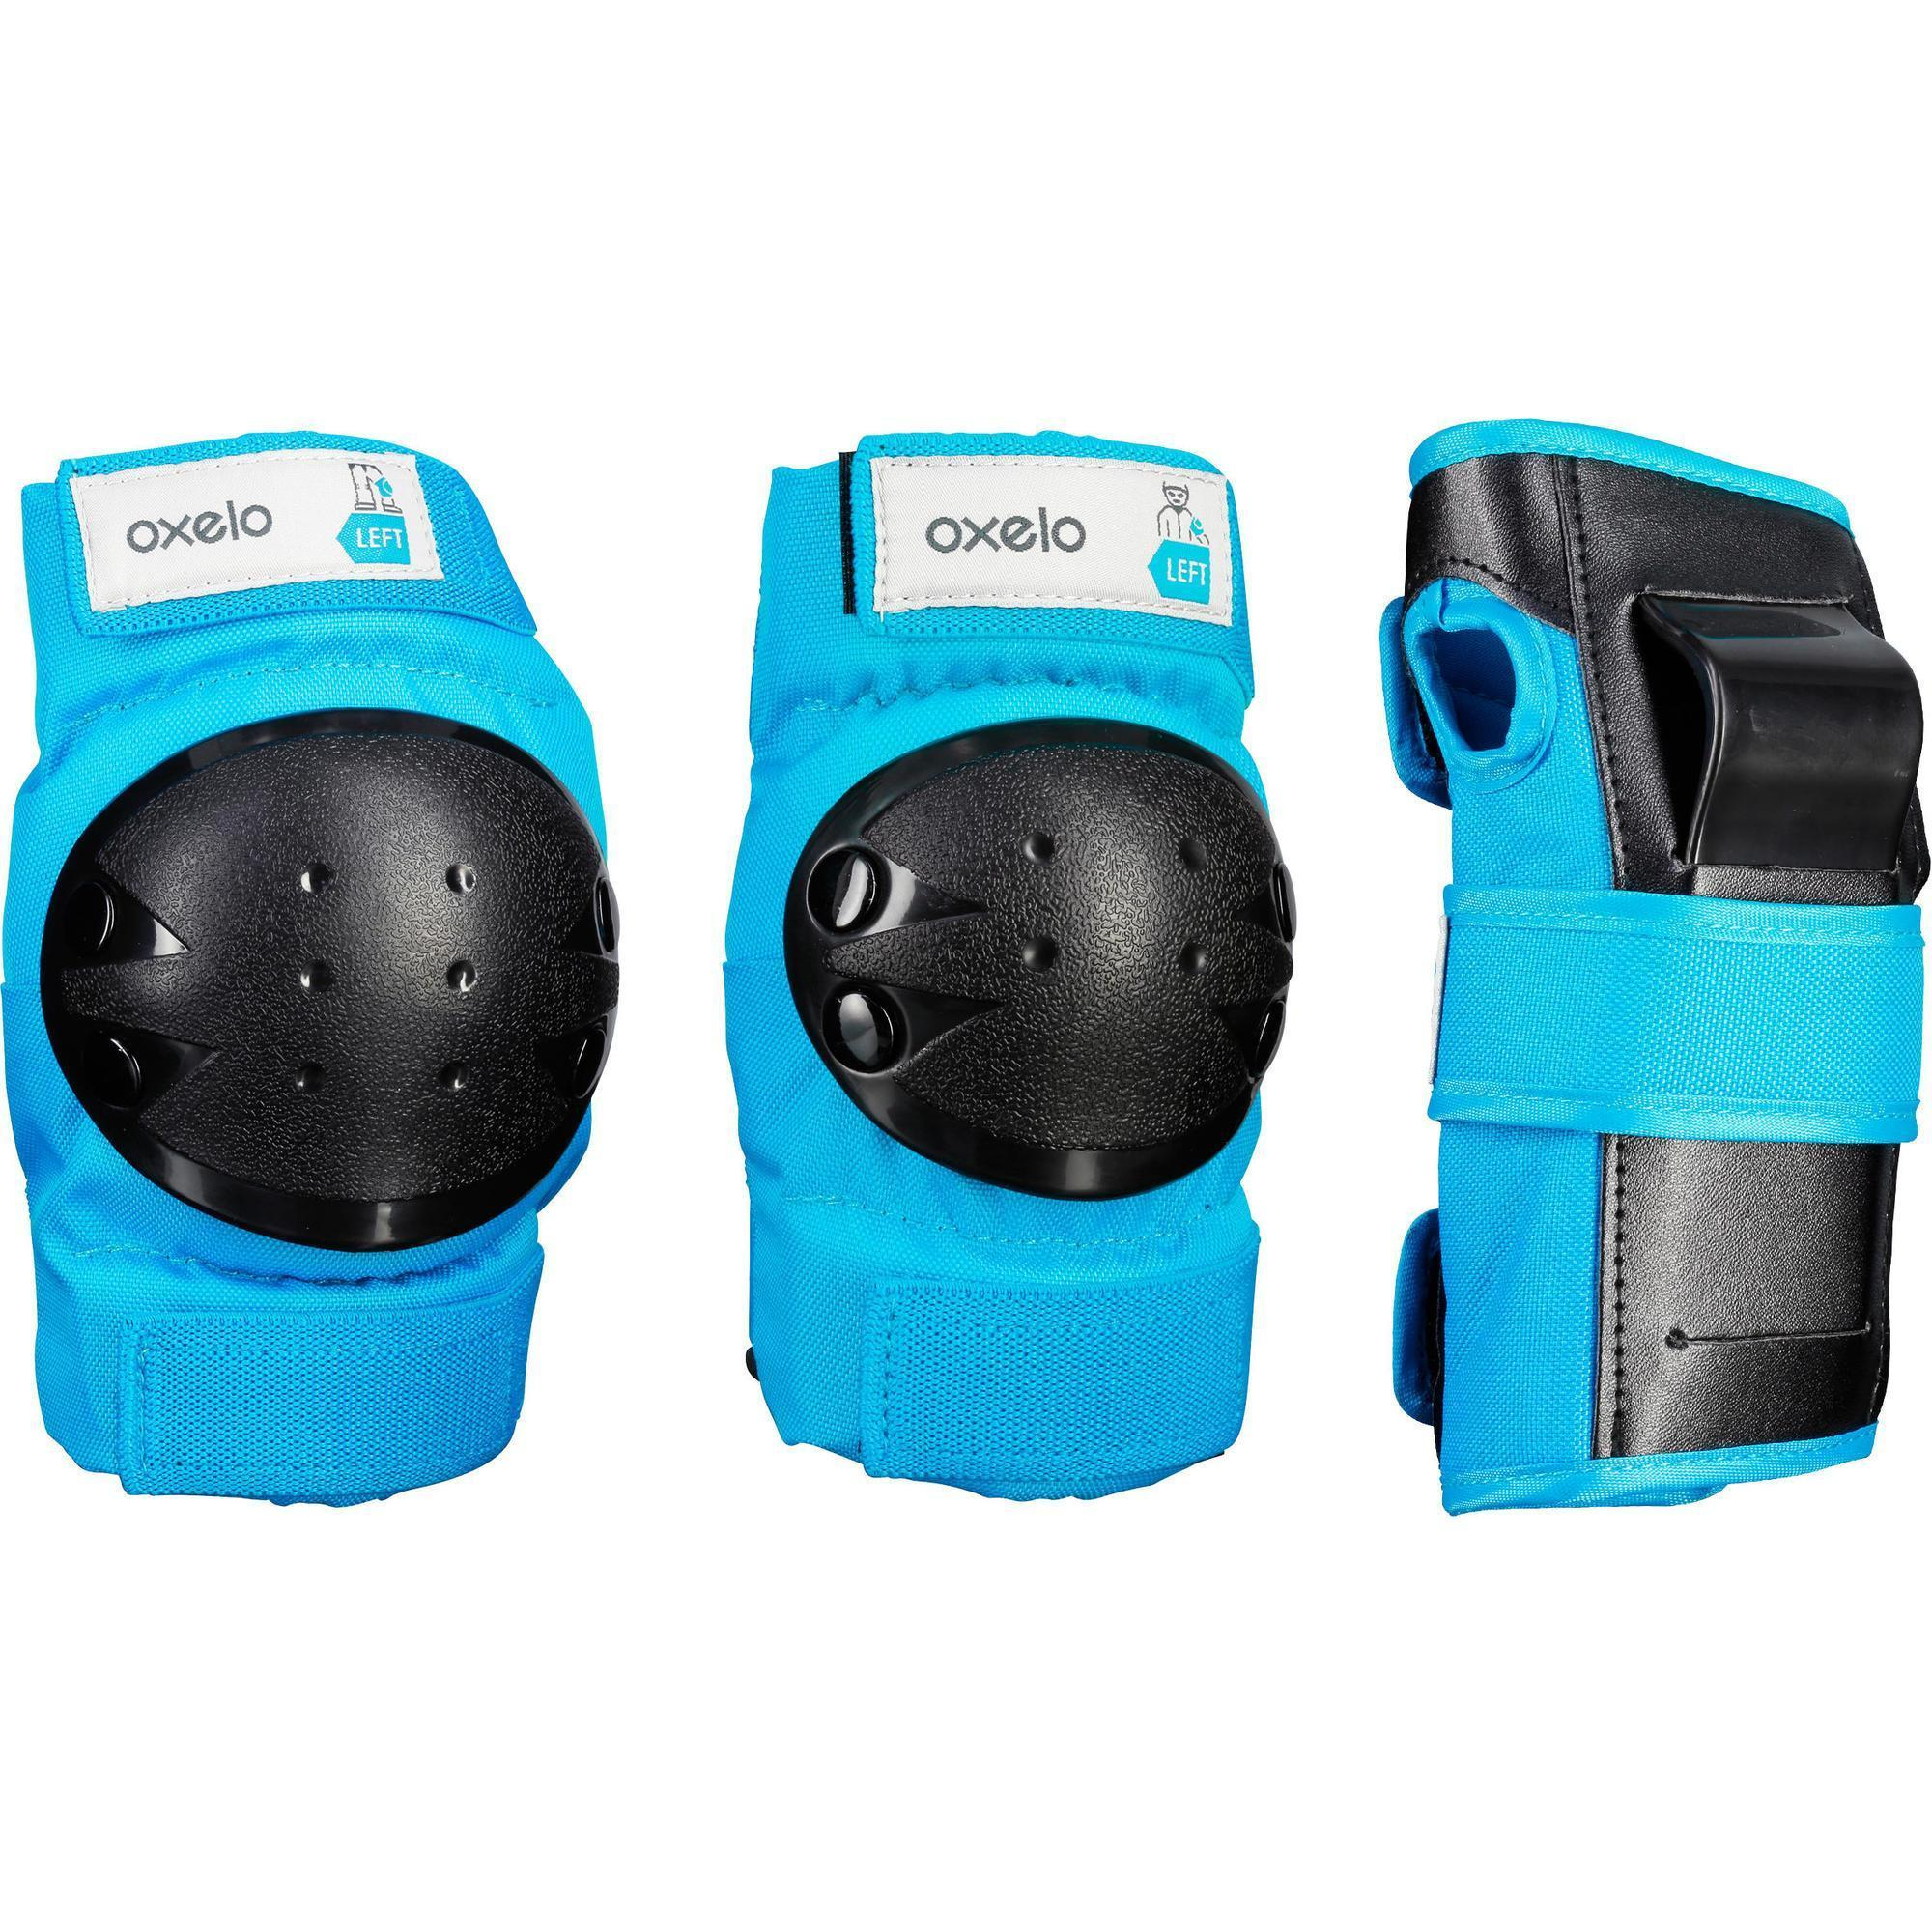 Basic Children S 3 Piece Protective Gear For Skates